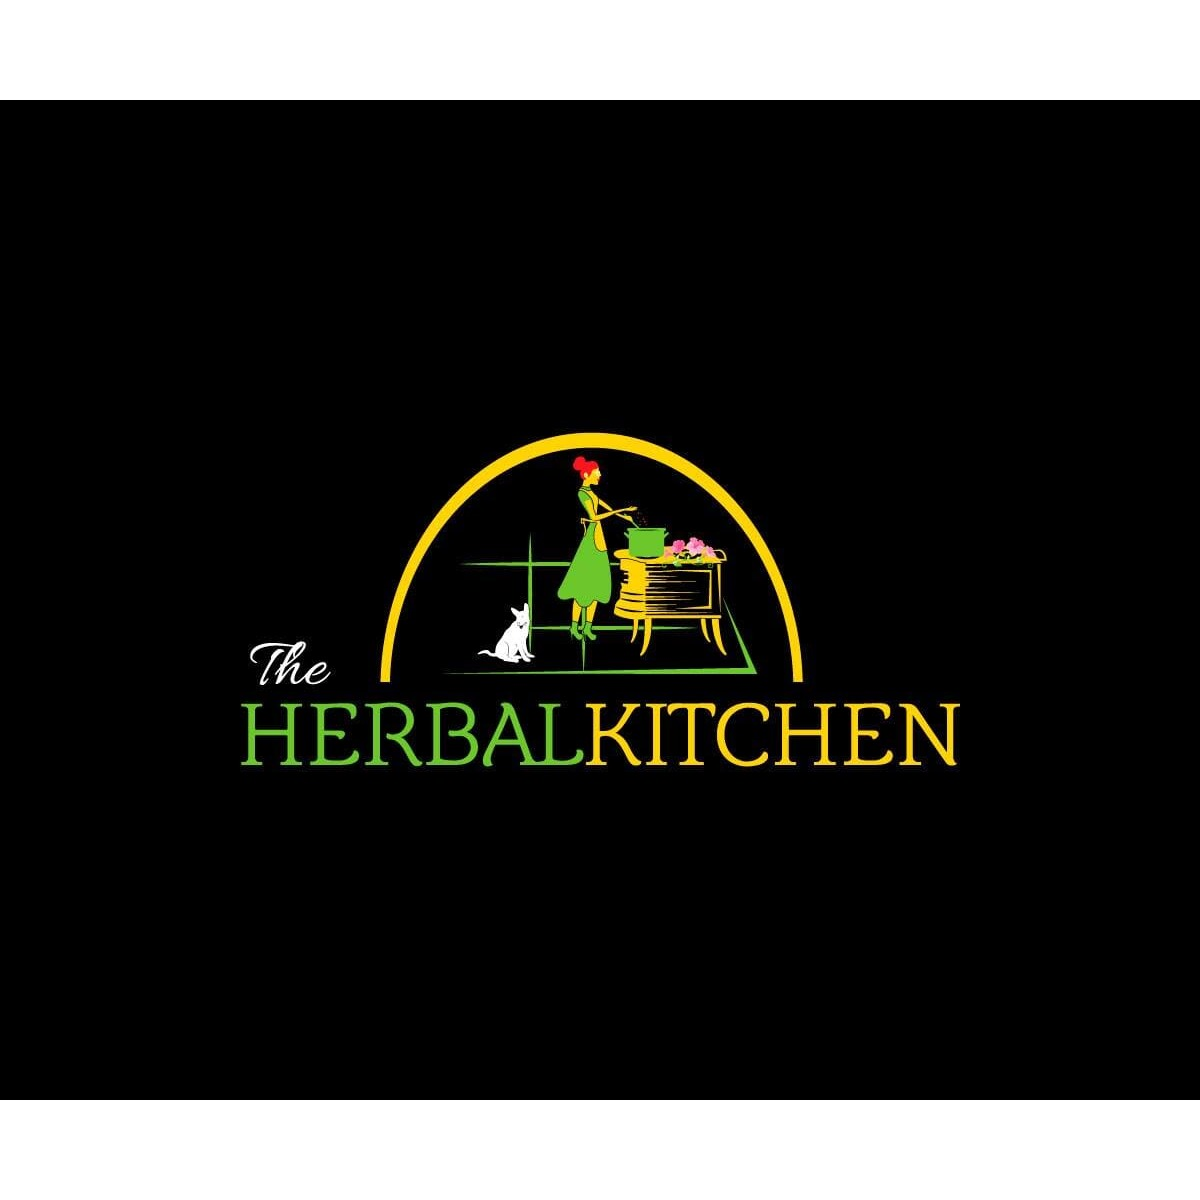 The Herbal Kitchen image 11